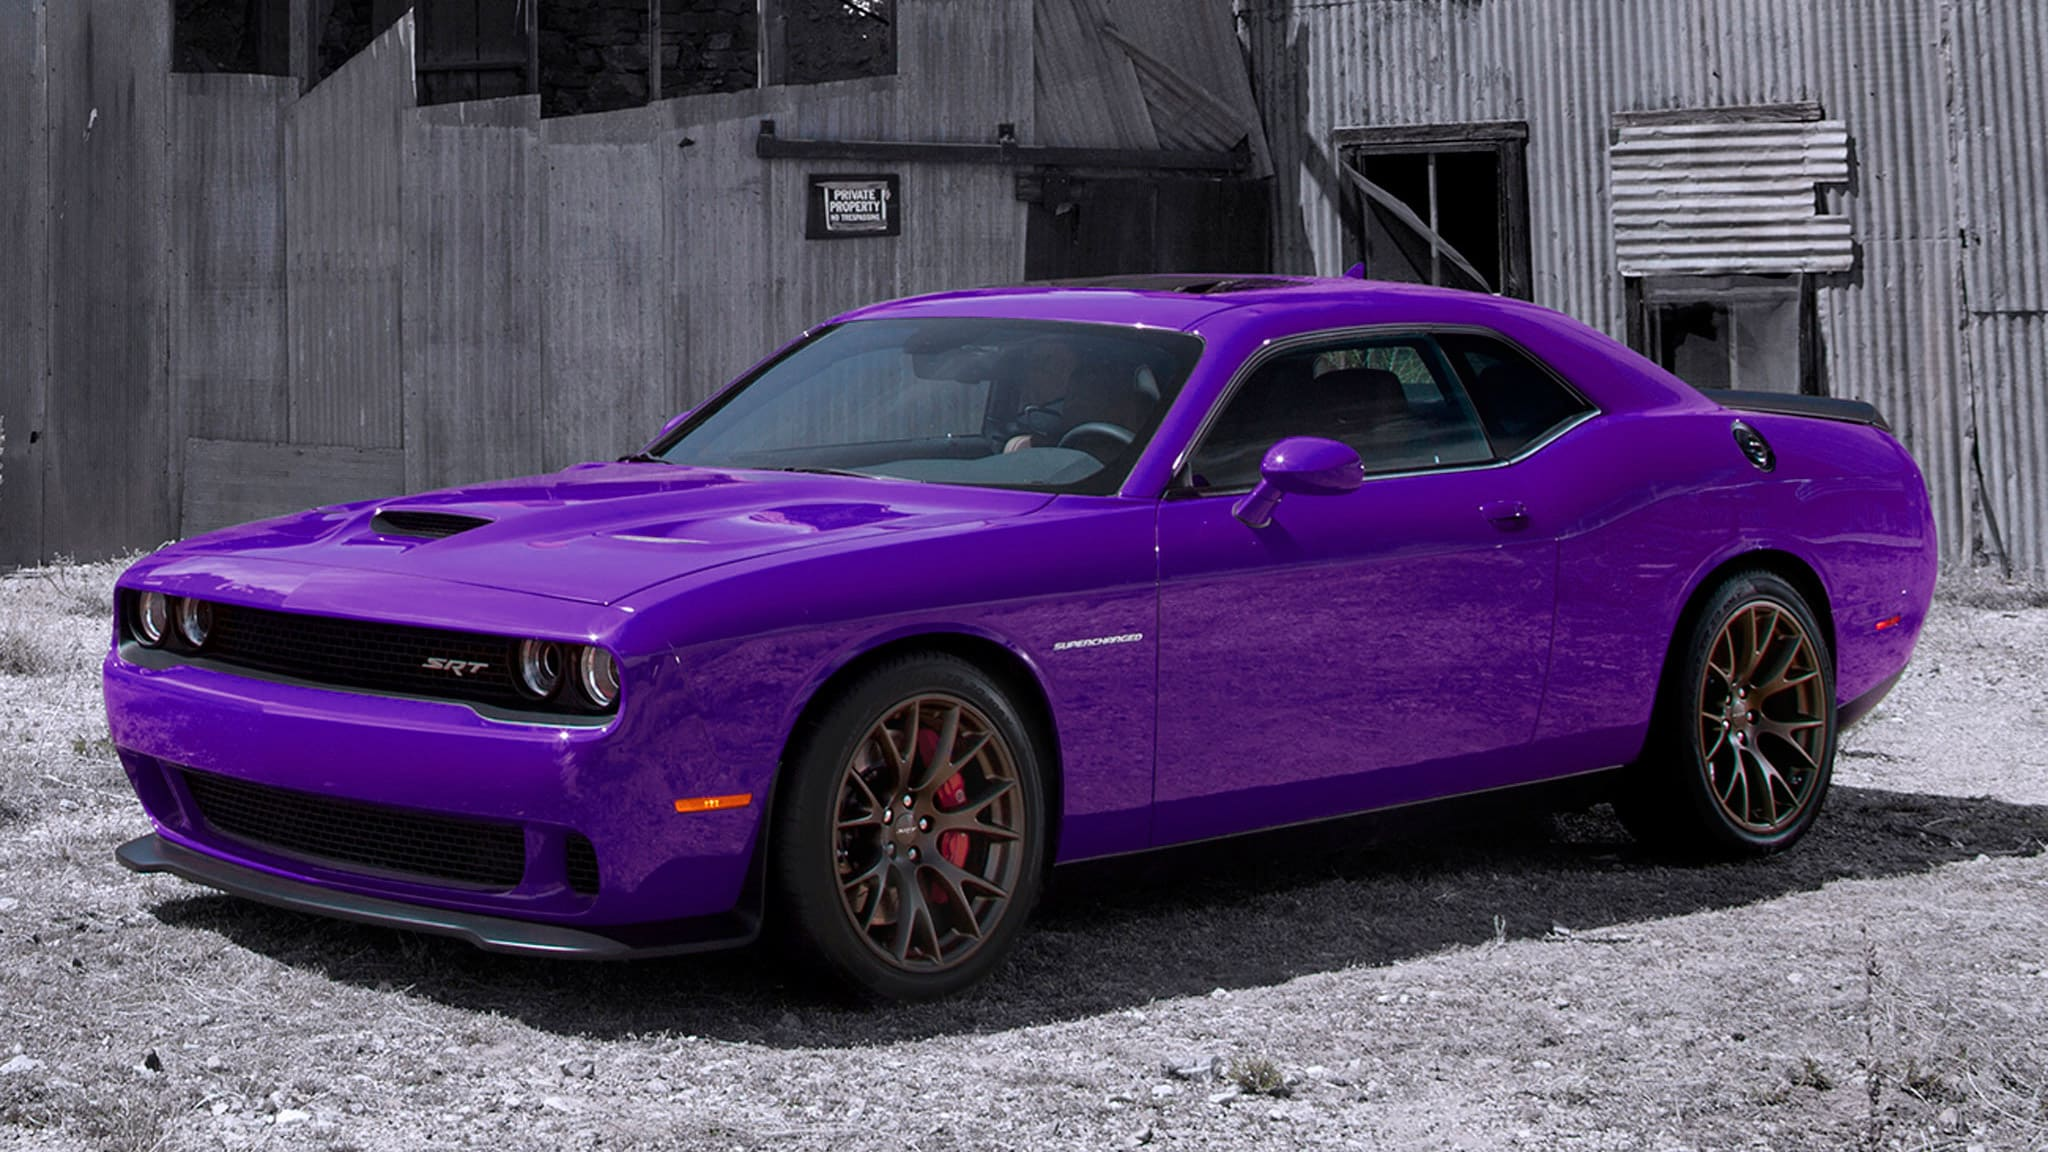 srt challenger hellcat for sale in carrollton ga - Challenger Hellcat